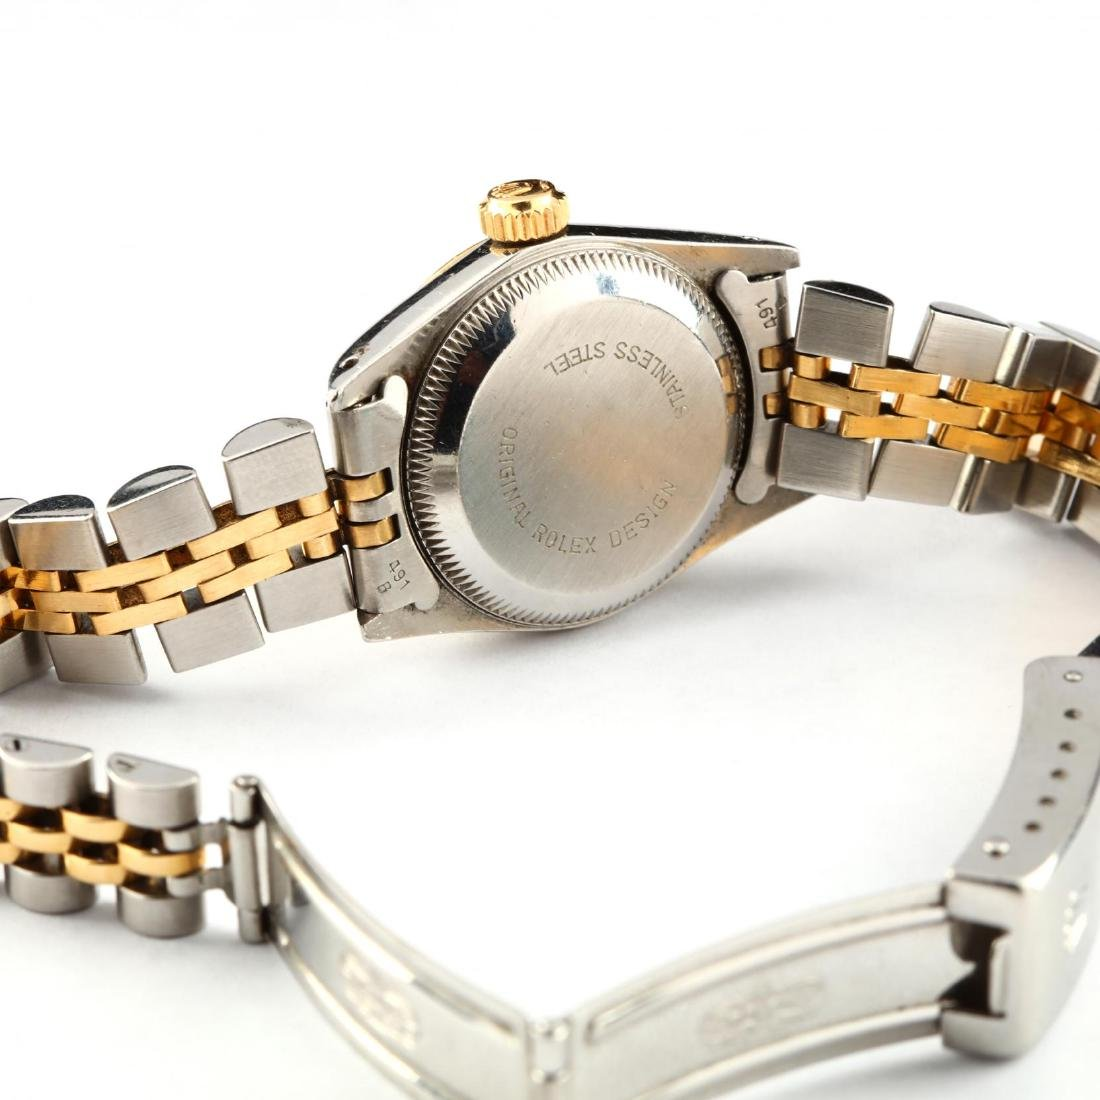 Lady's Stainless Steel and Gold Oyster Perpetual Watch, - 2